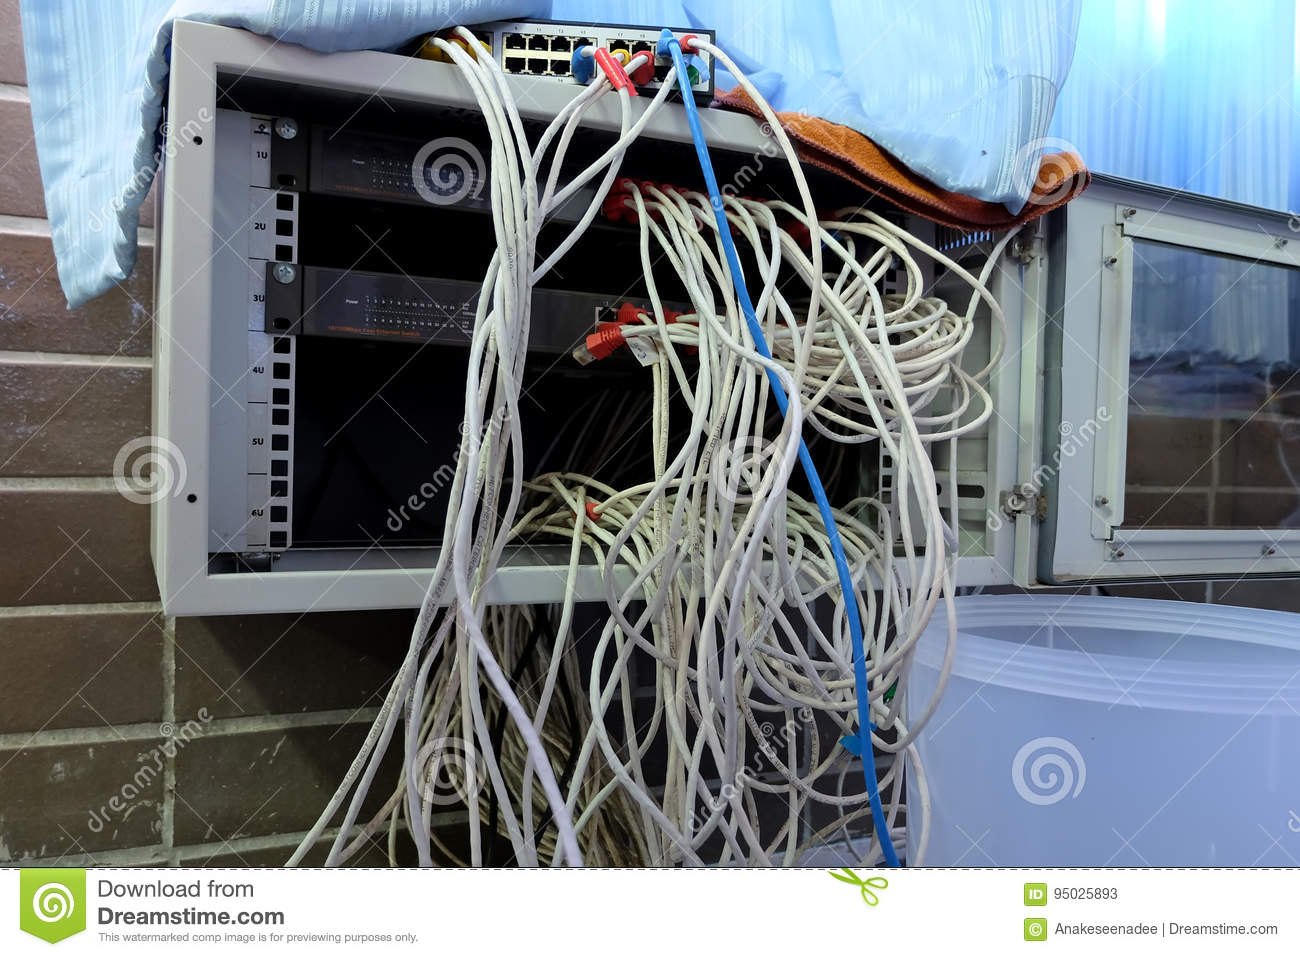 Lan cable tangle stock image. Image of detail, information - 95025893